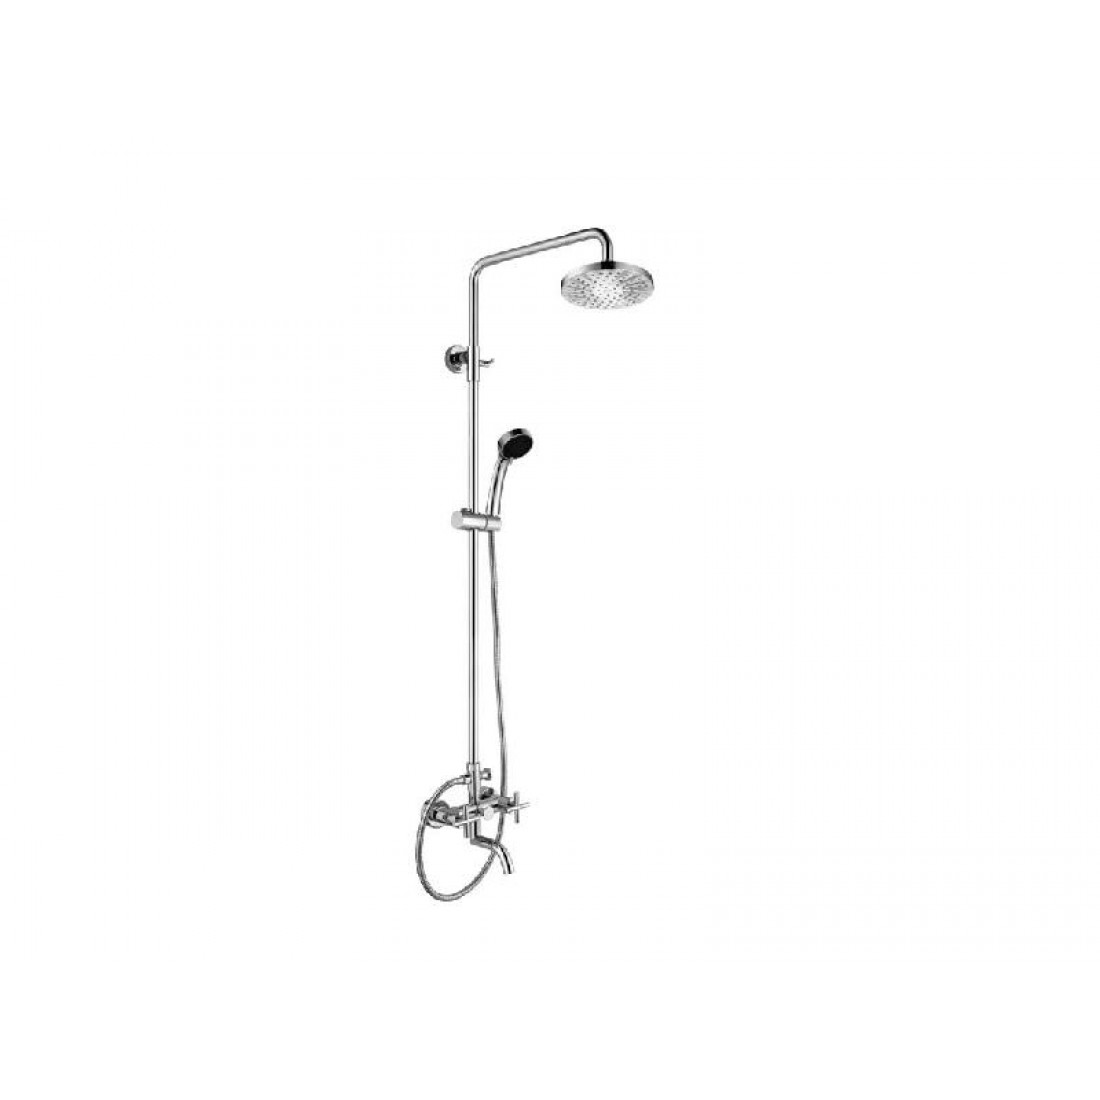 Karag Praxis 27029T7 Faucet Fixed Shower Chrome T7 Collection